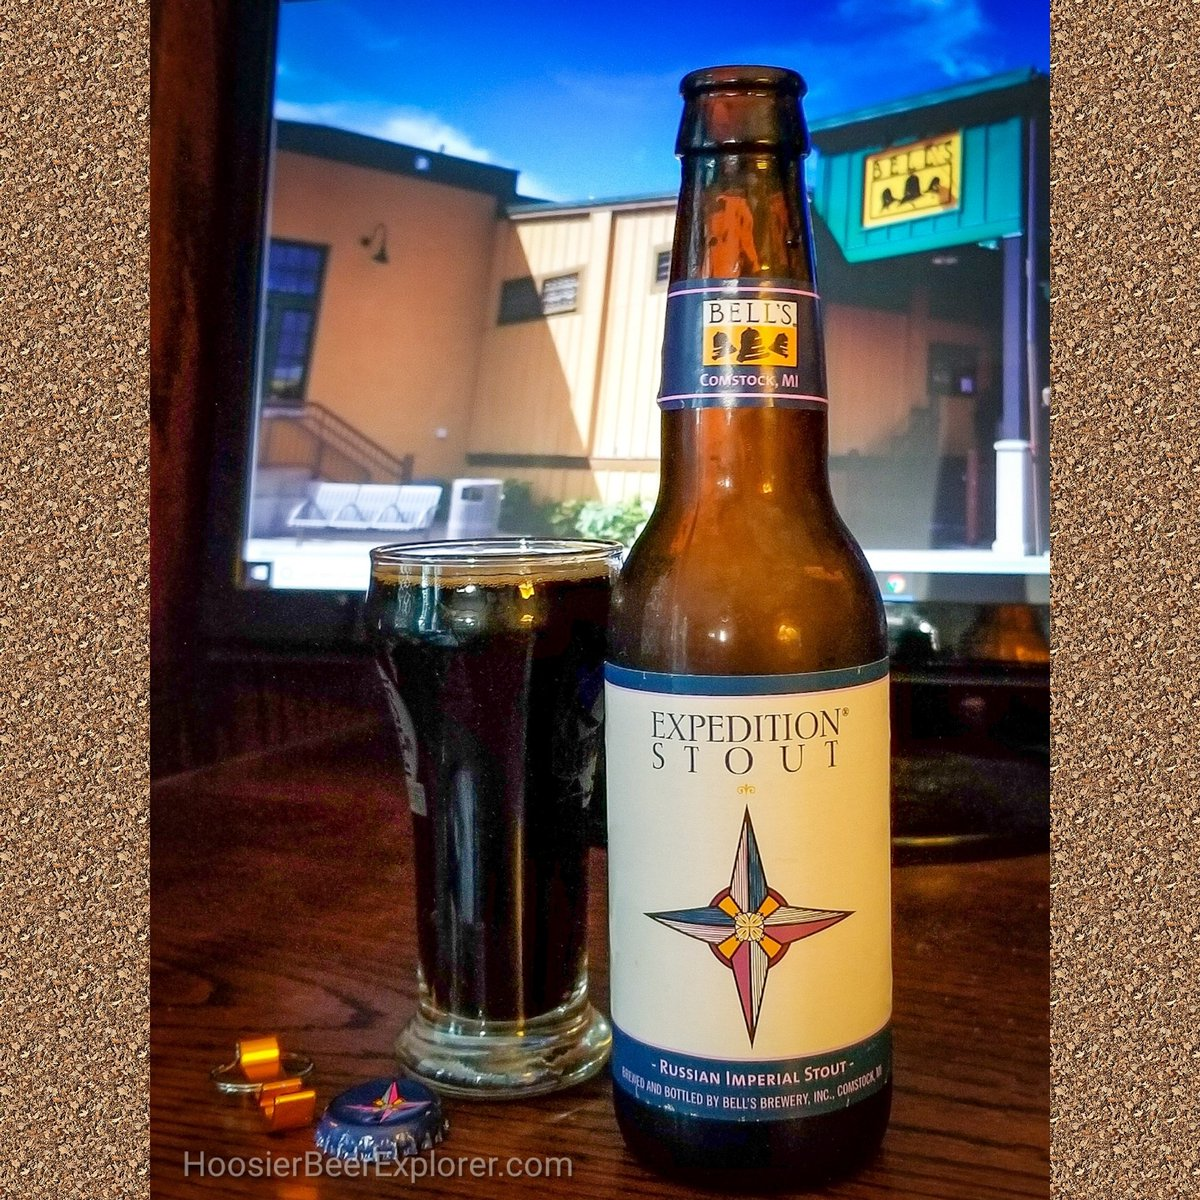 Reminiscing aboat our trip up north. The Expedition Stout from @bellsbrewery makes a great souvenir. @bellseccentriccafe is a must visit. Yummy food and beer of course. #craftbeerlover #michigancraftbeer #bellsbrewery